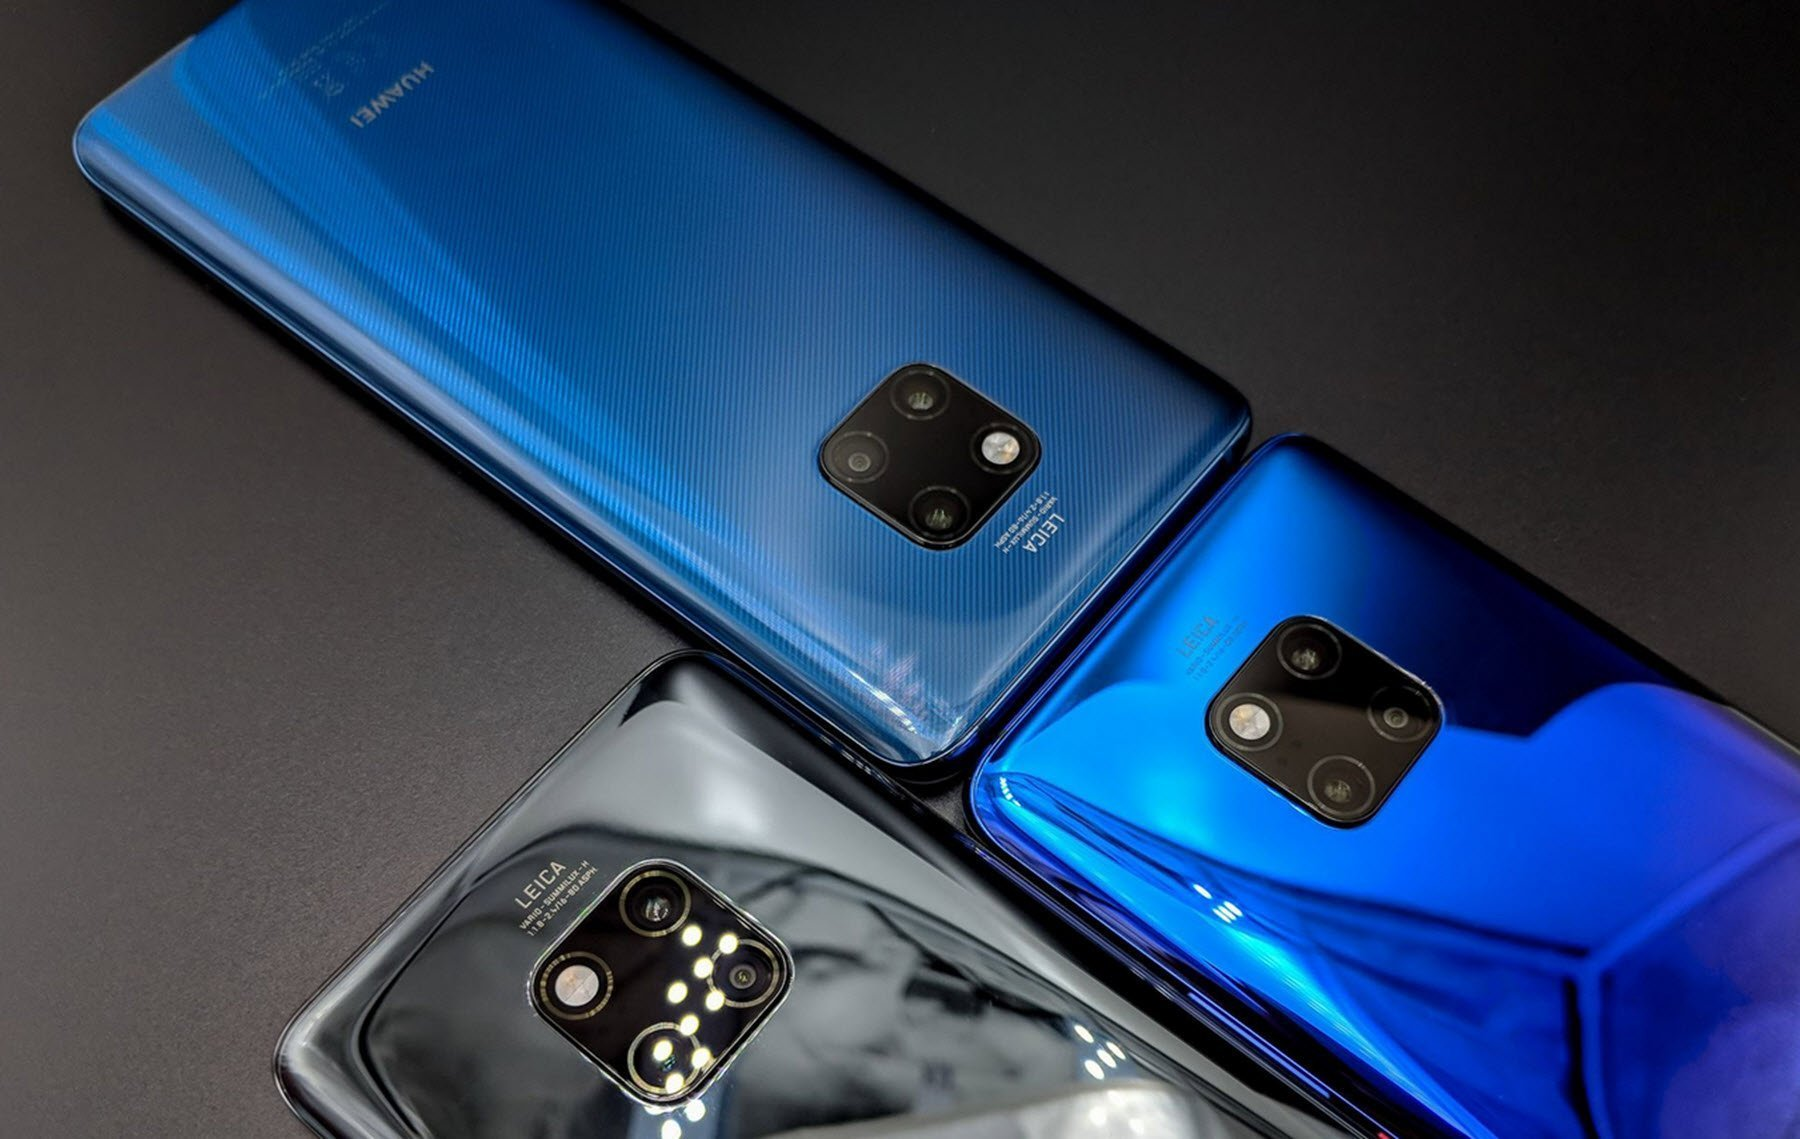 Huawei Mate 20 series get EMUI 9.1 update, more devices to follow